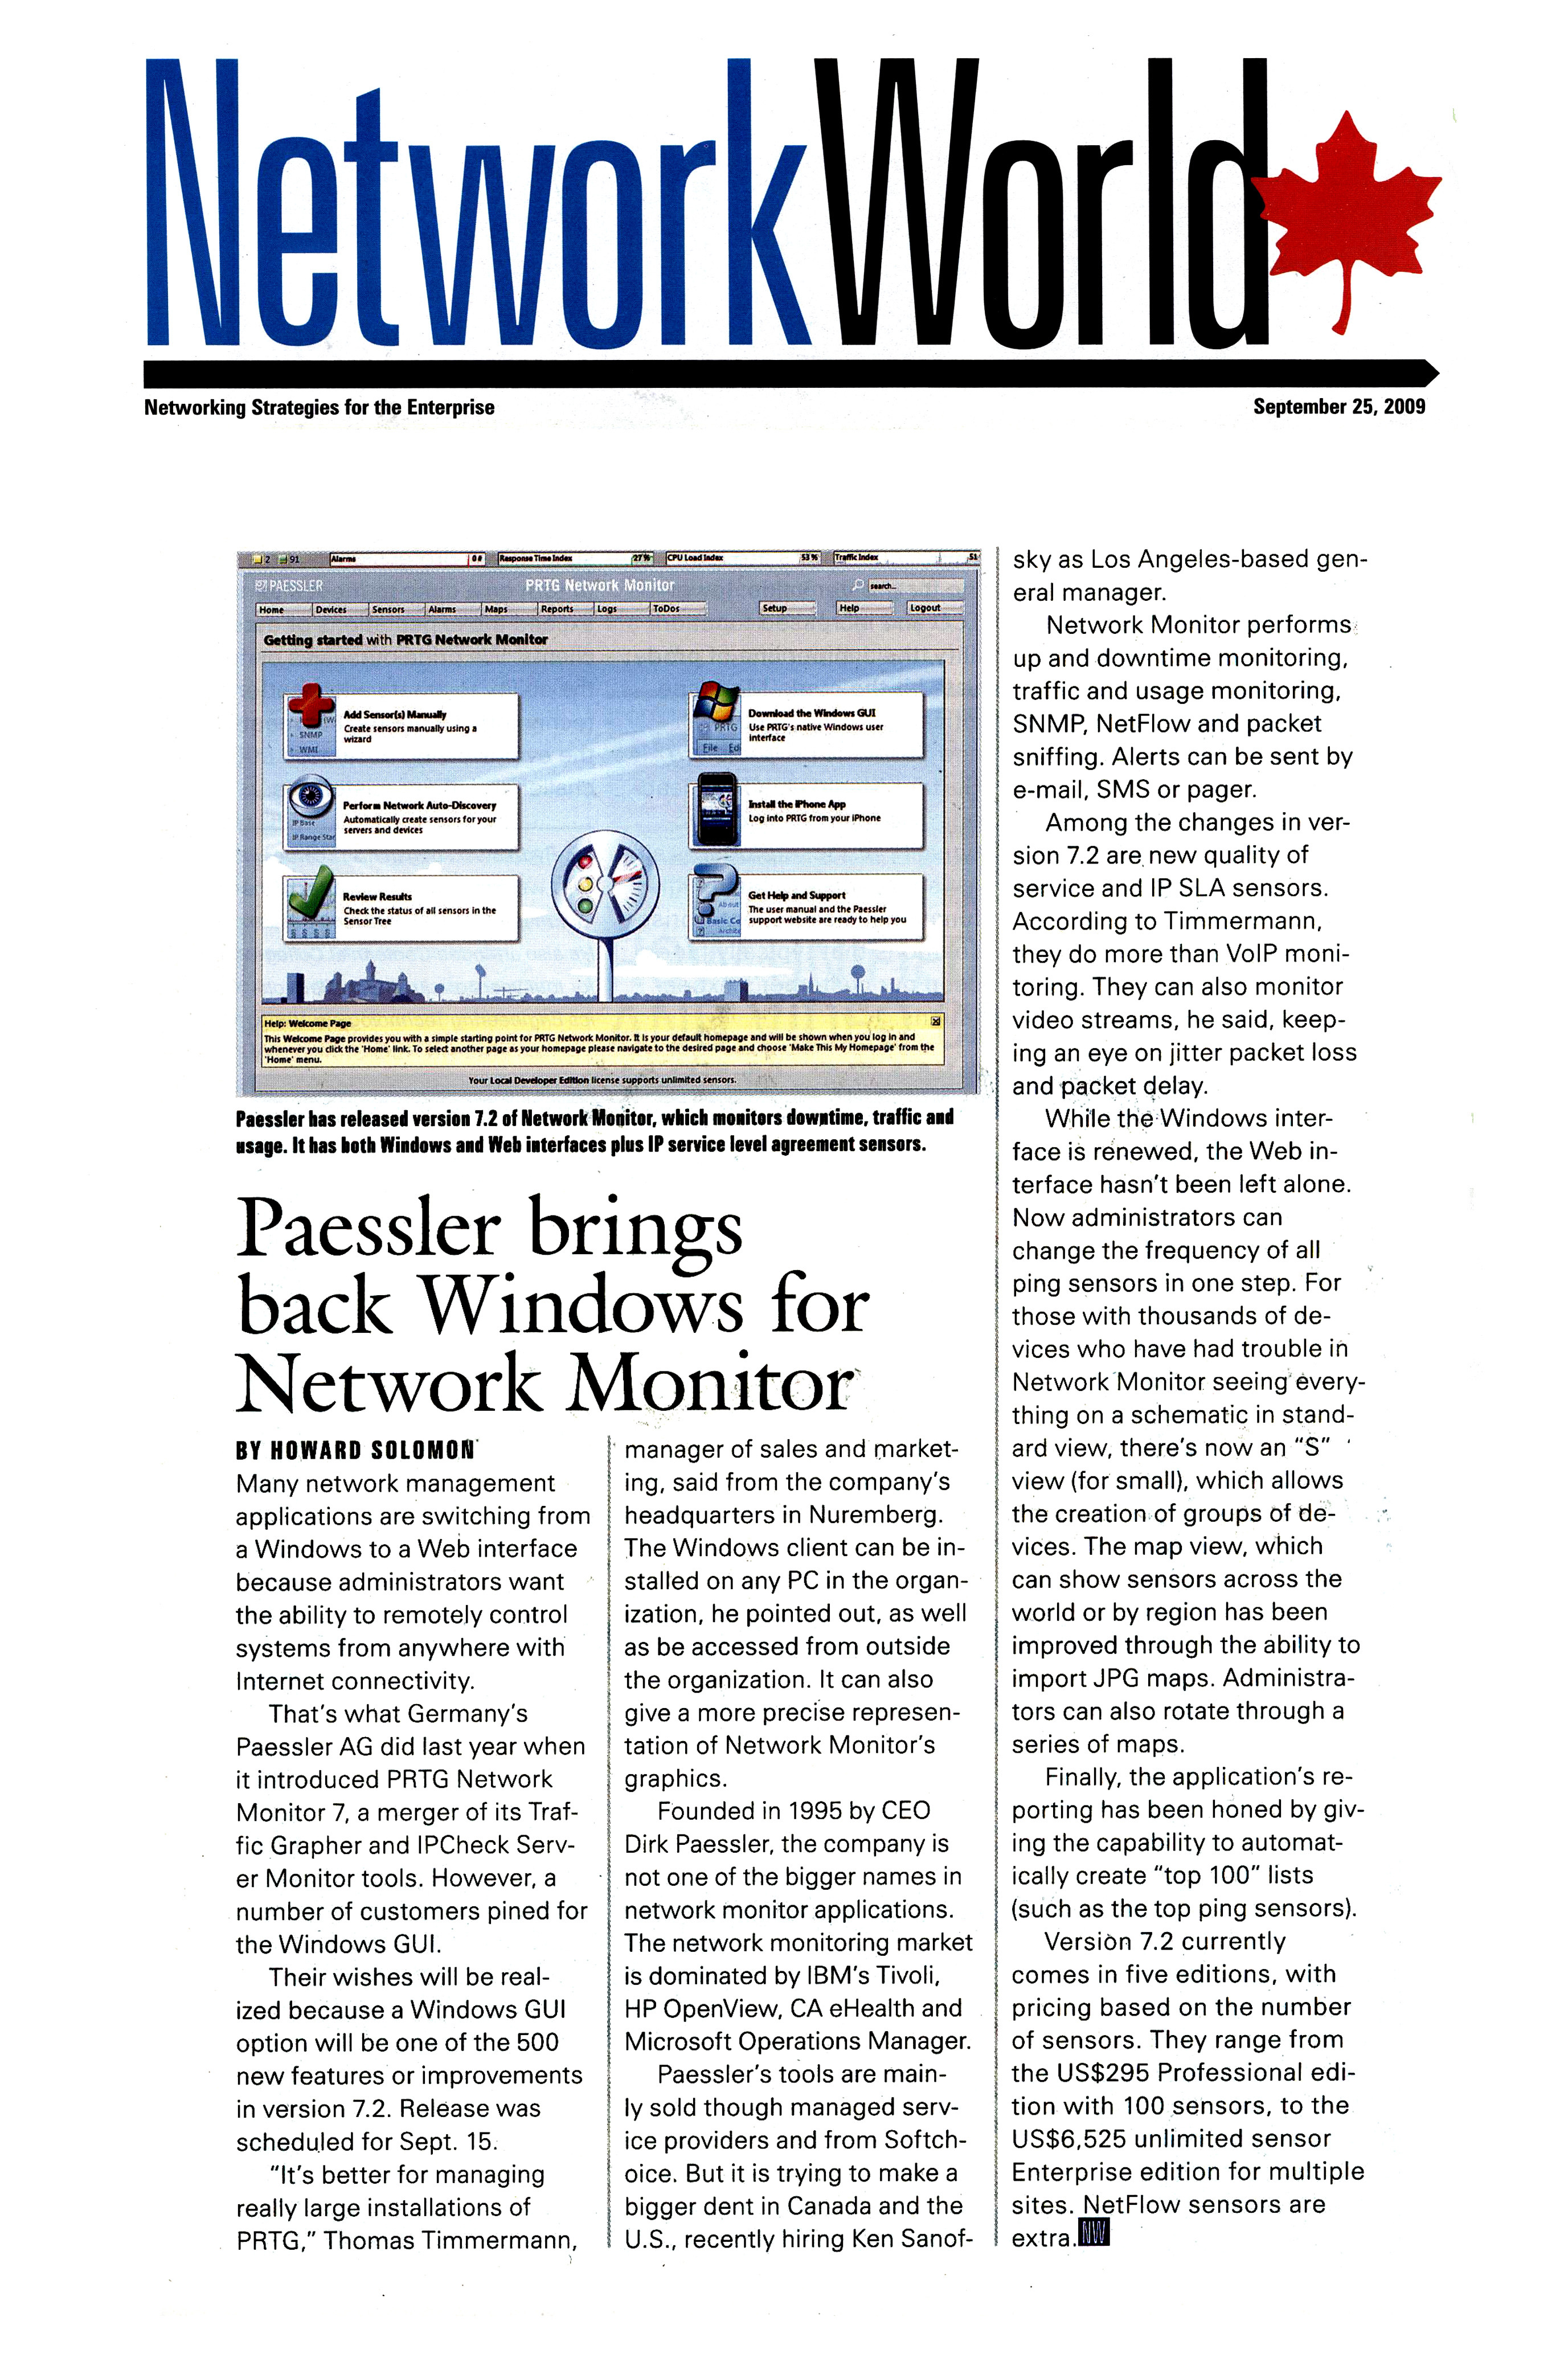 PRTG 7.2 featured in IT World Canada